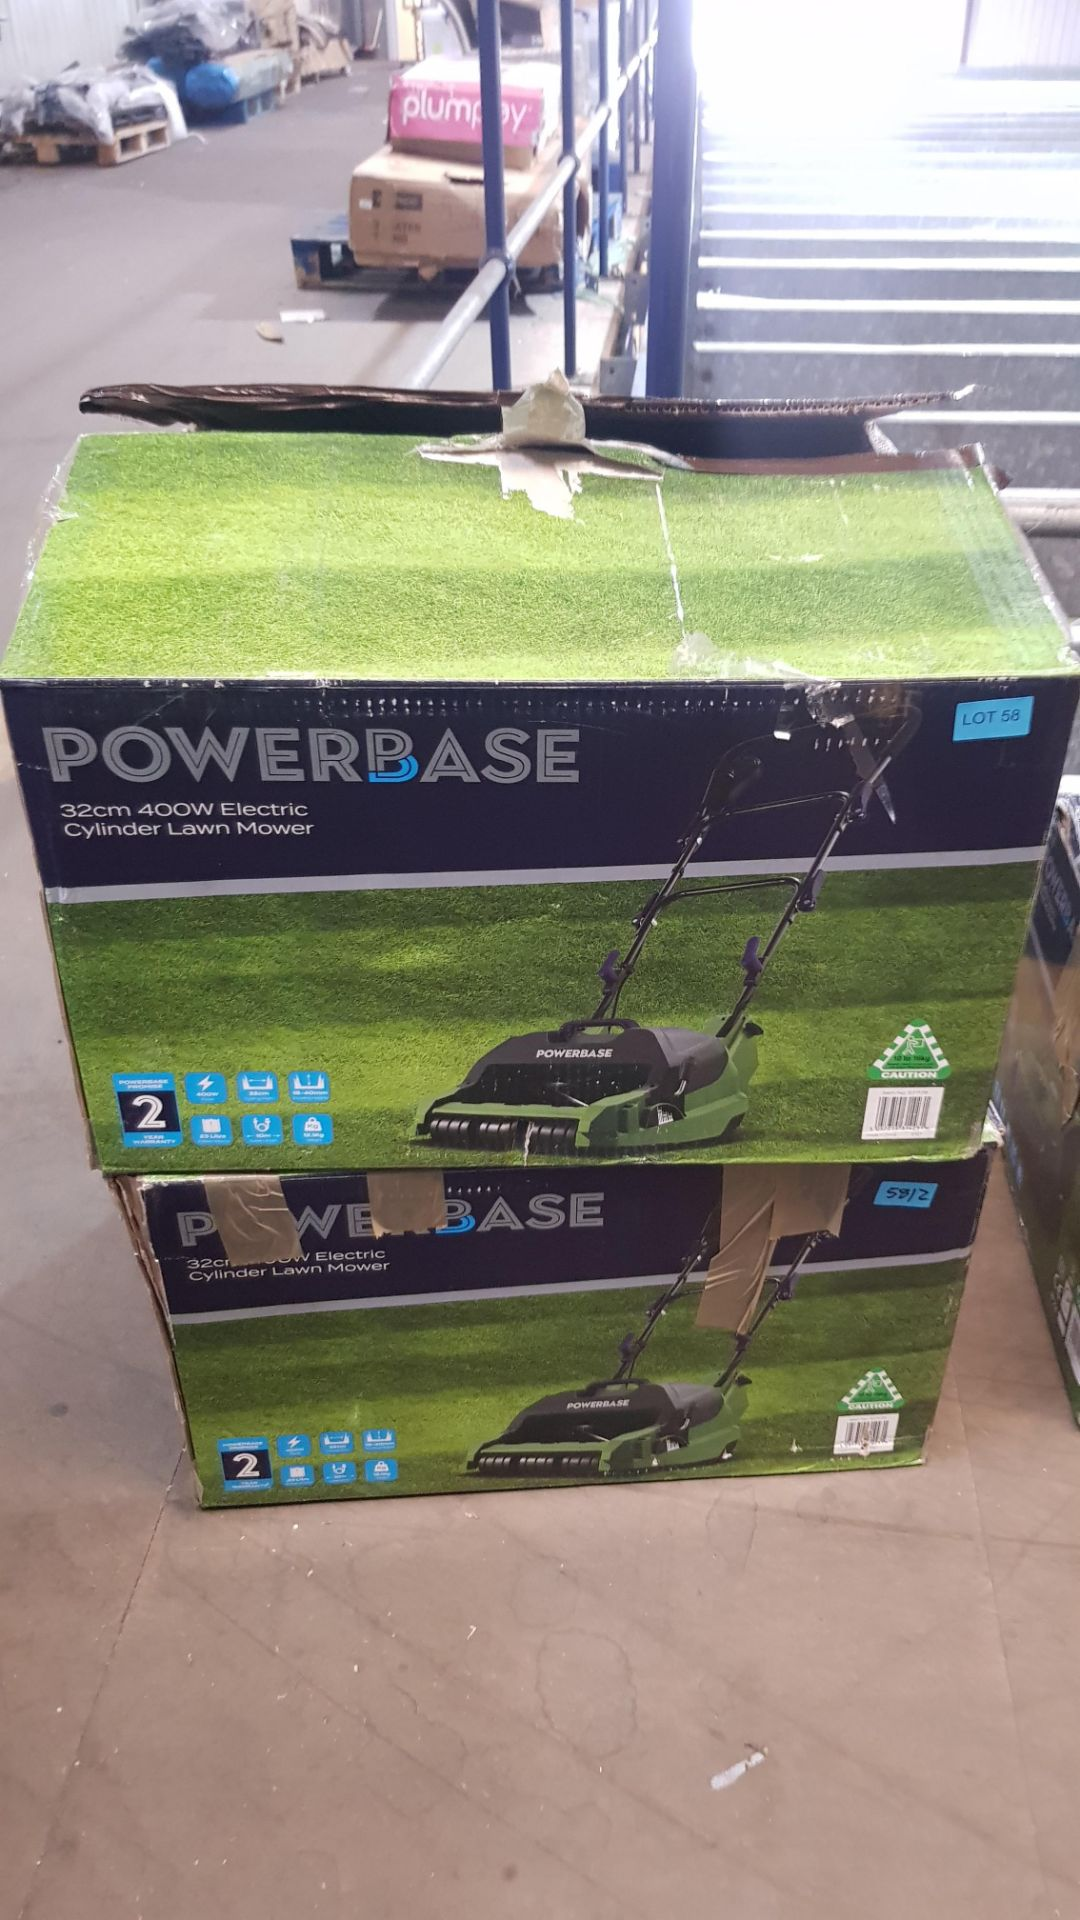 (P6) 2x Powerbase 32cm 400W Electric Cylinder Lawn Mower RRP £89 Each. - Image 2 of 2